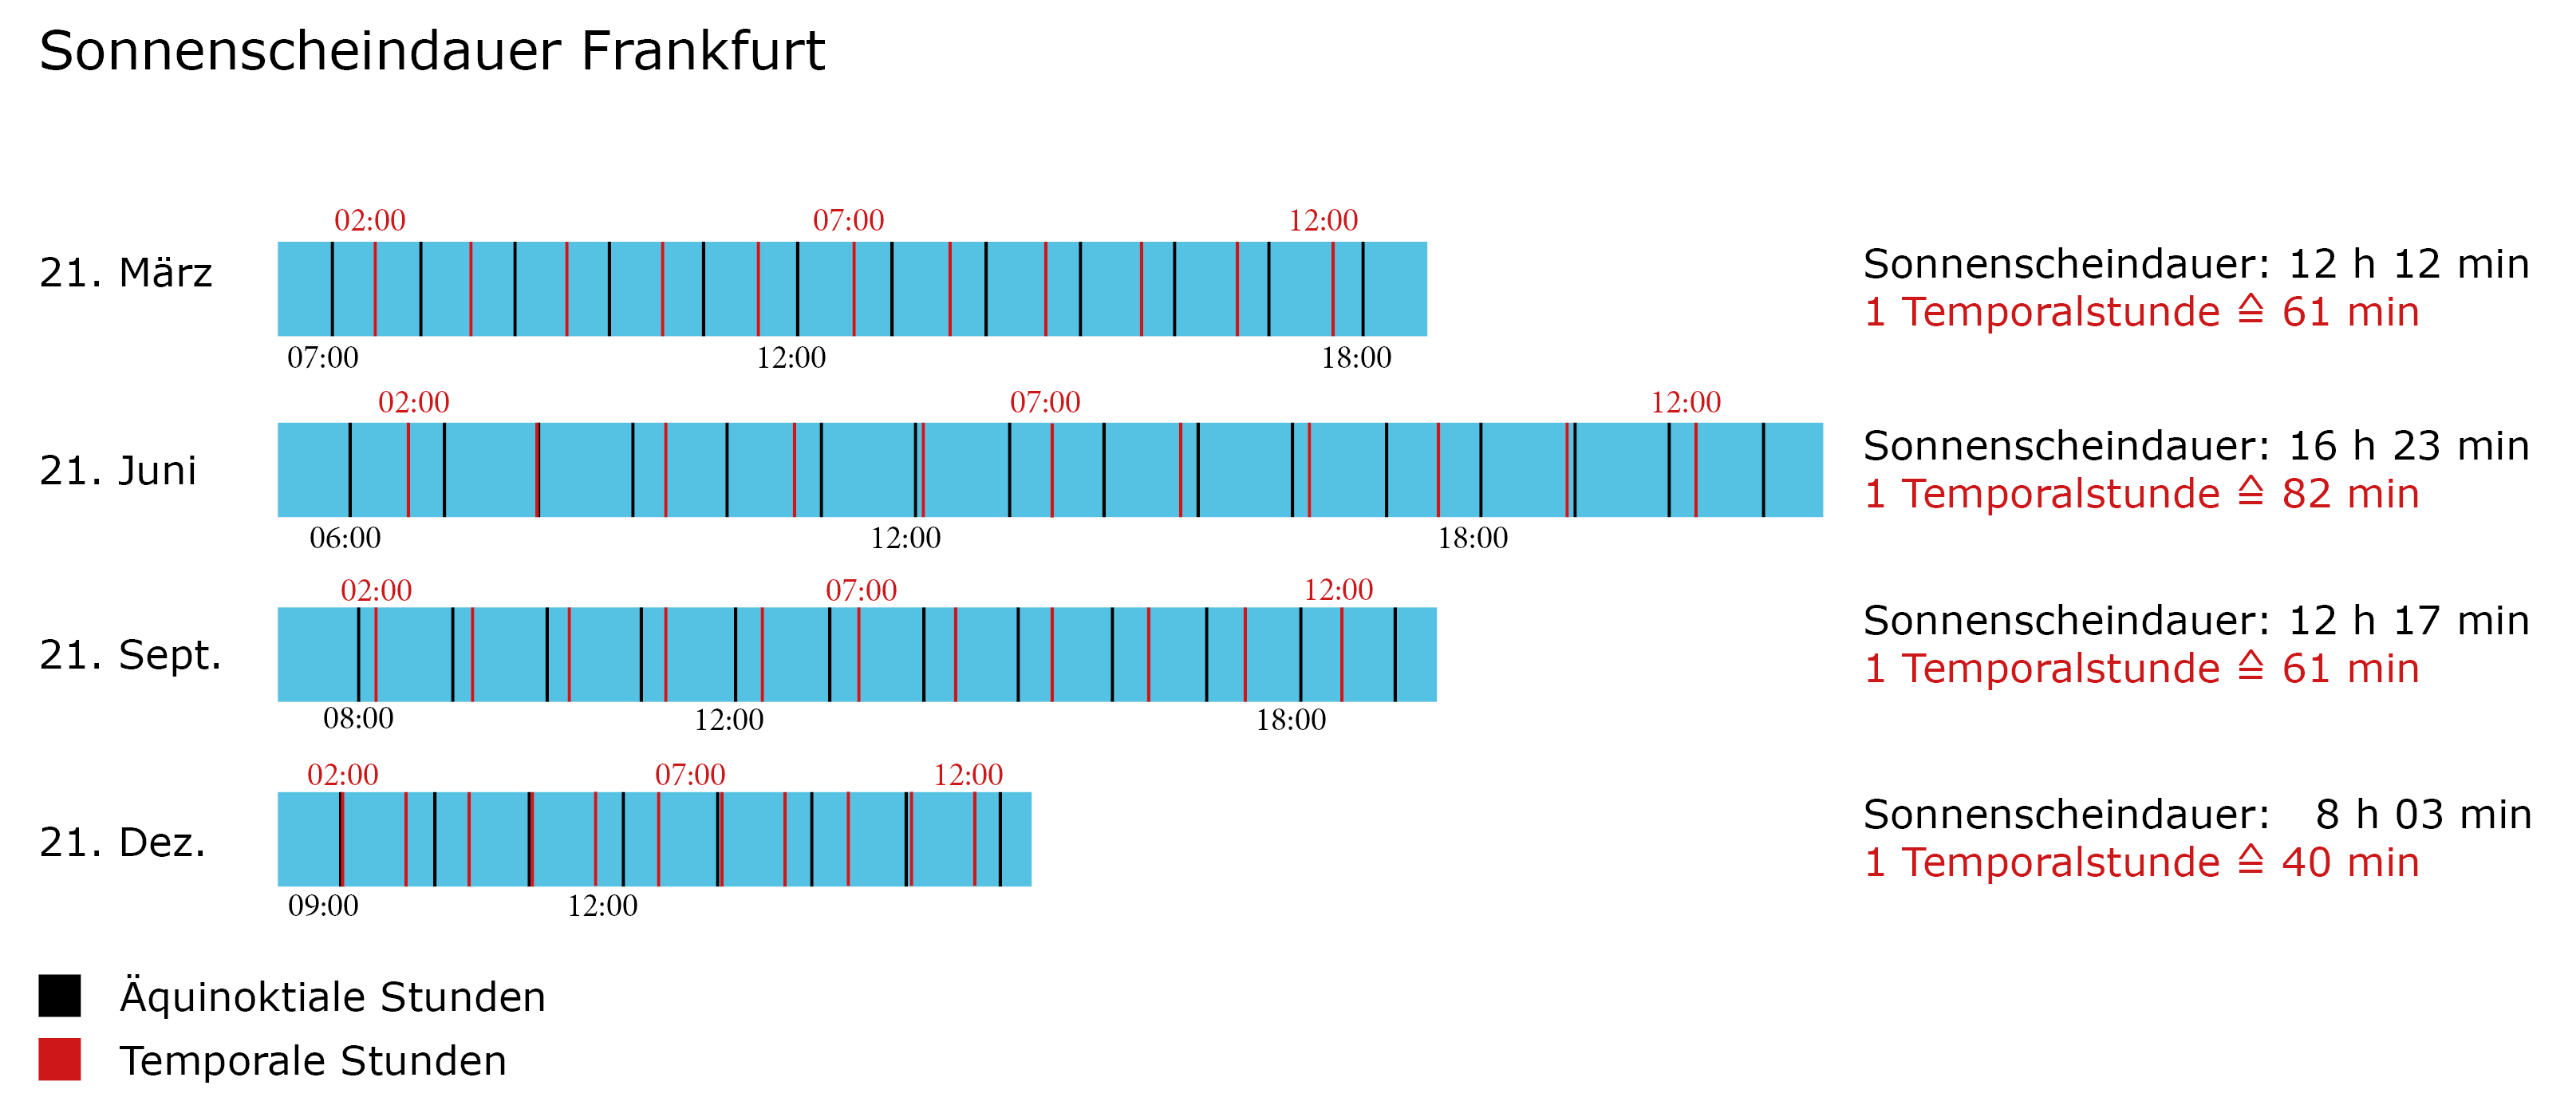 Duration od sunshine Frankfurt Graphic Temporal Hours in Comparison with Equinoctial Hours